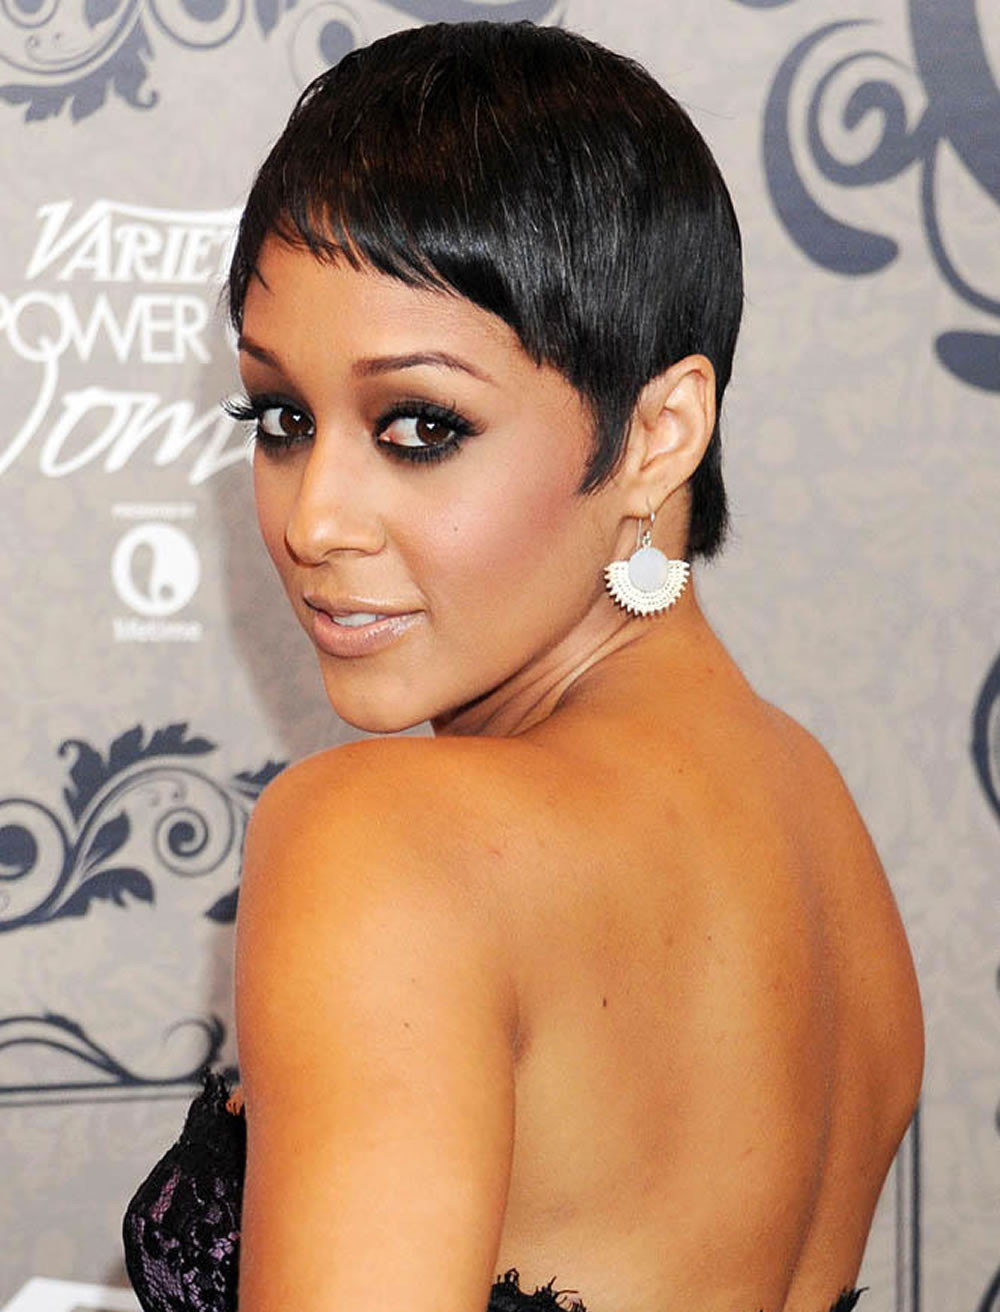 Short Black Hairstyles For 2019  Pixie Short Hairstyles for Black Women 2018 2019 – HAIRSTYLES